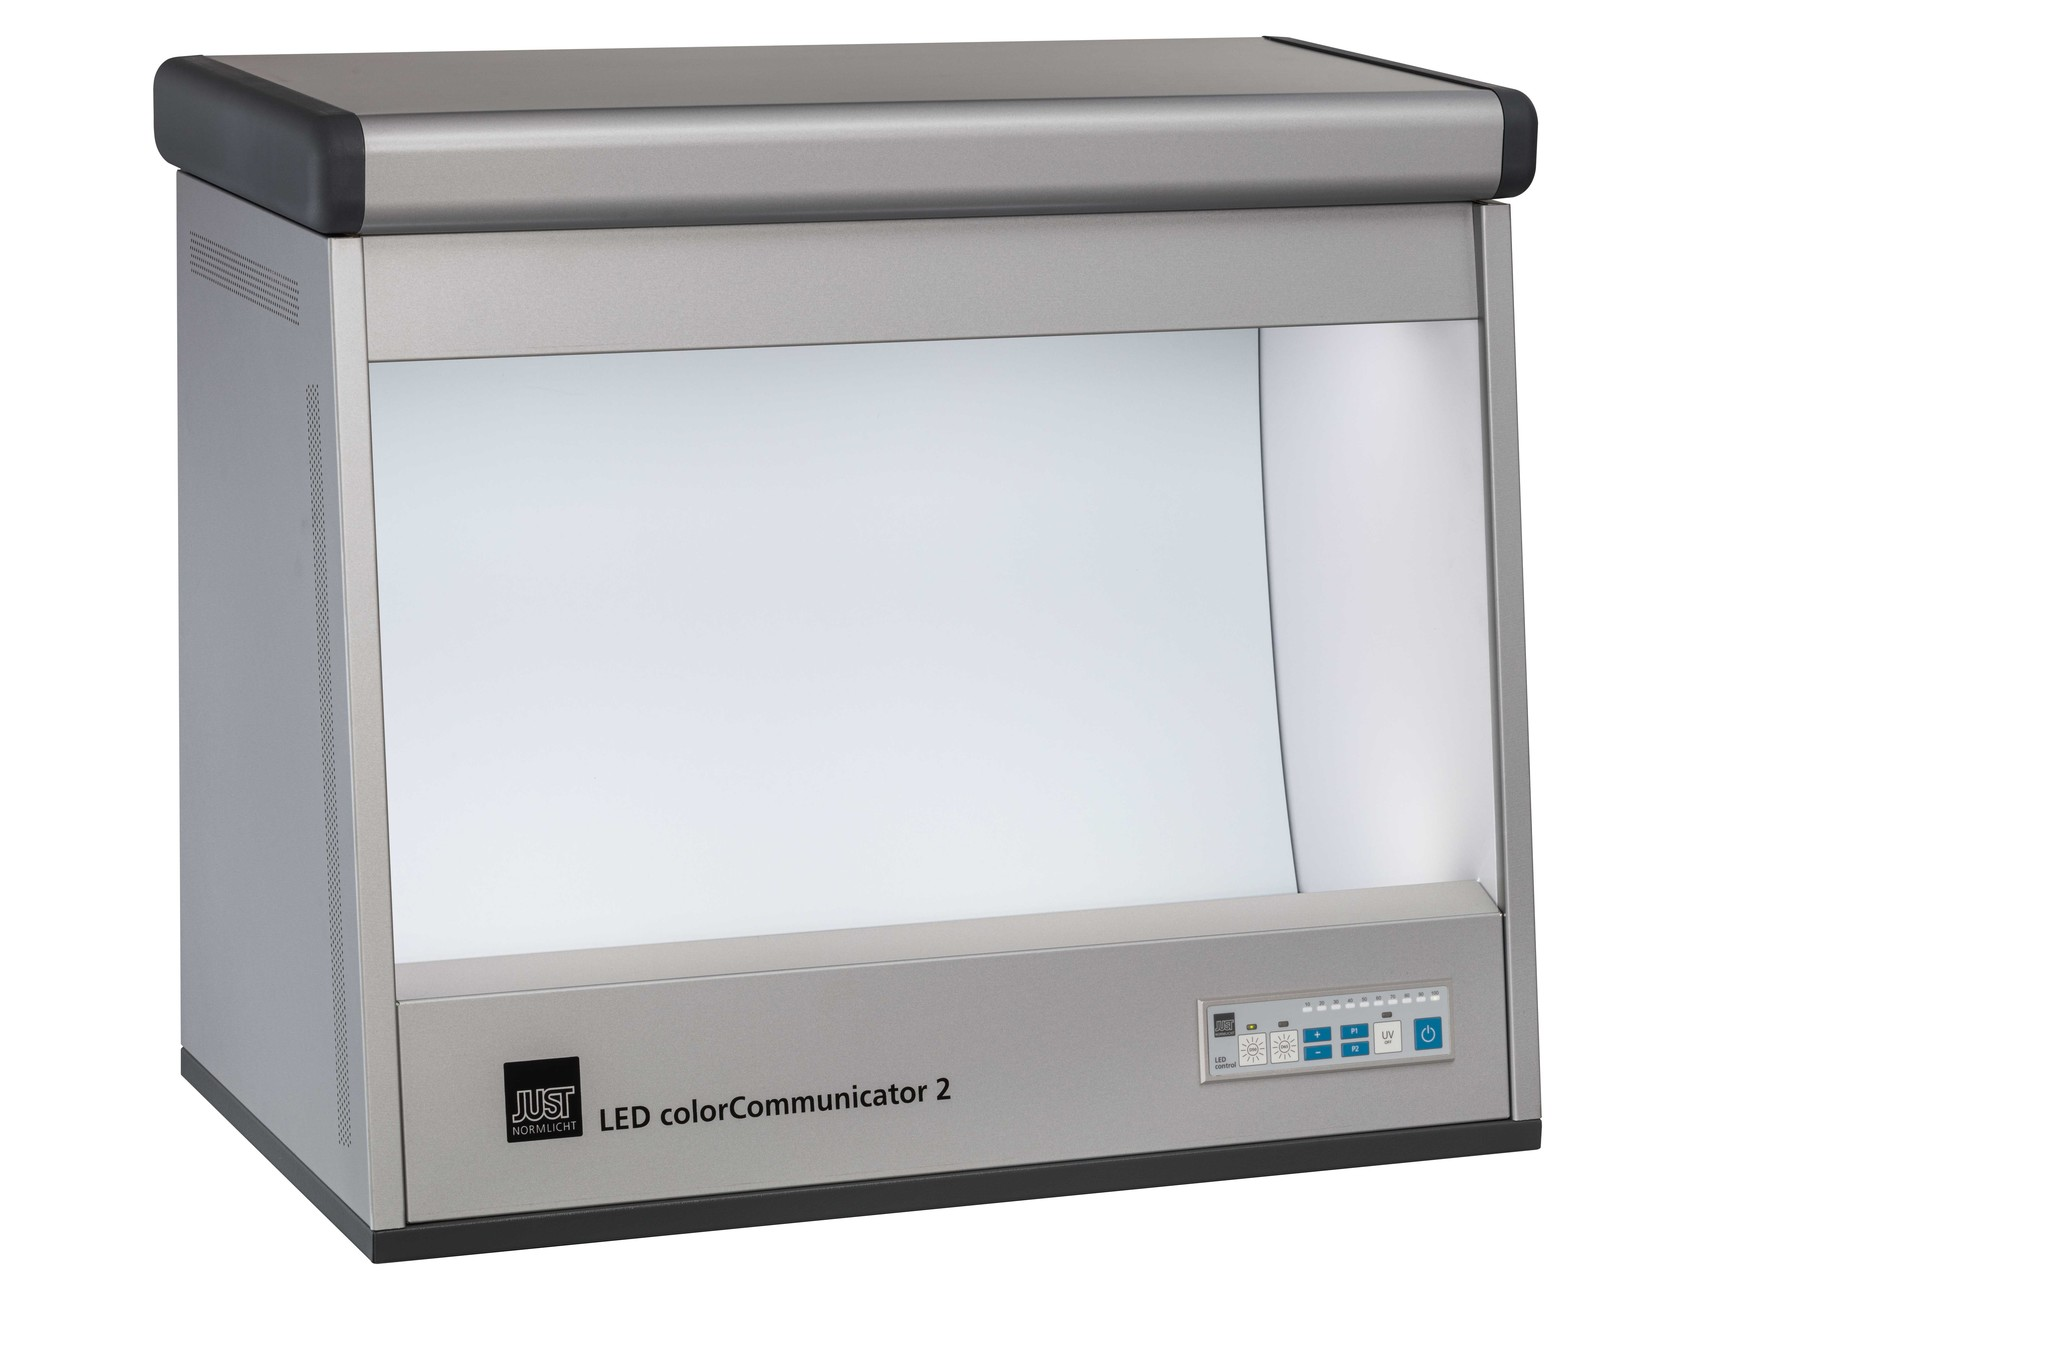 JUST NORMLICHT LED colorCommunicator 2